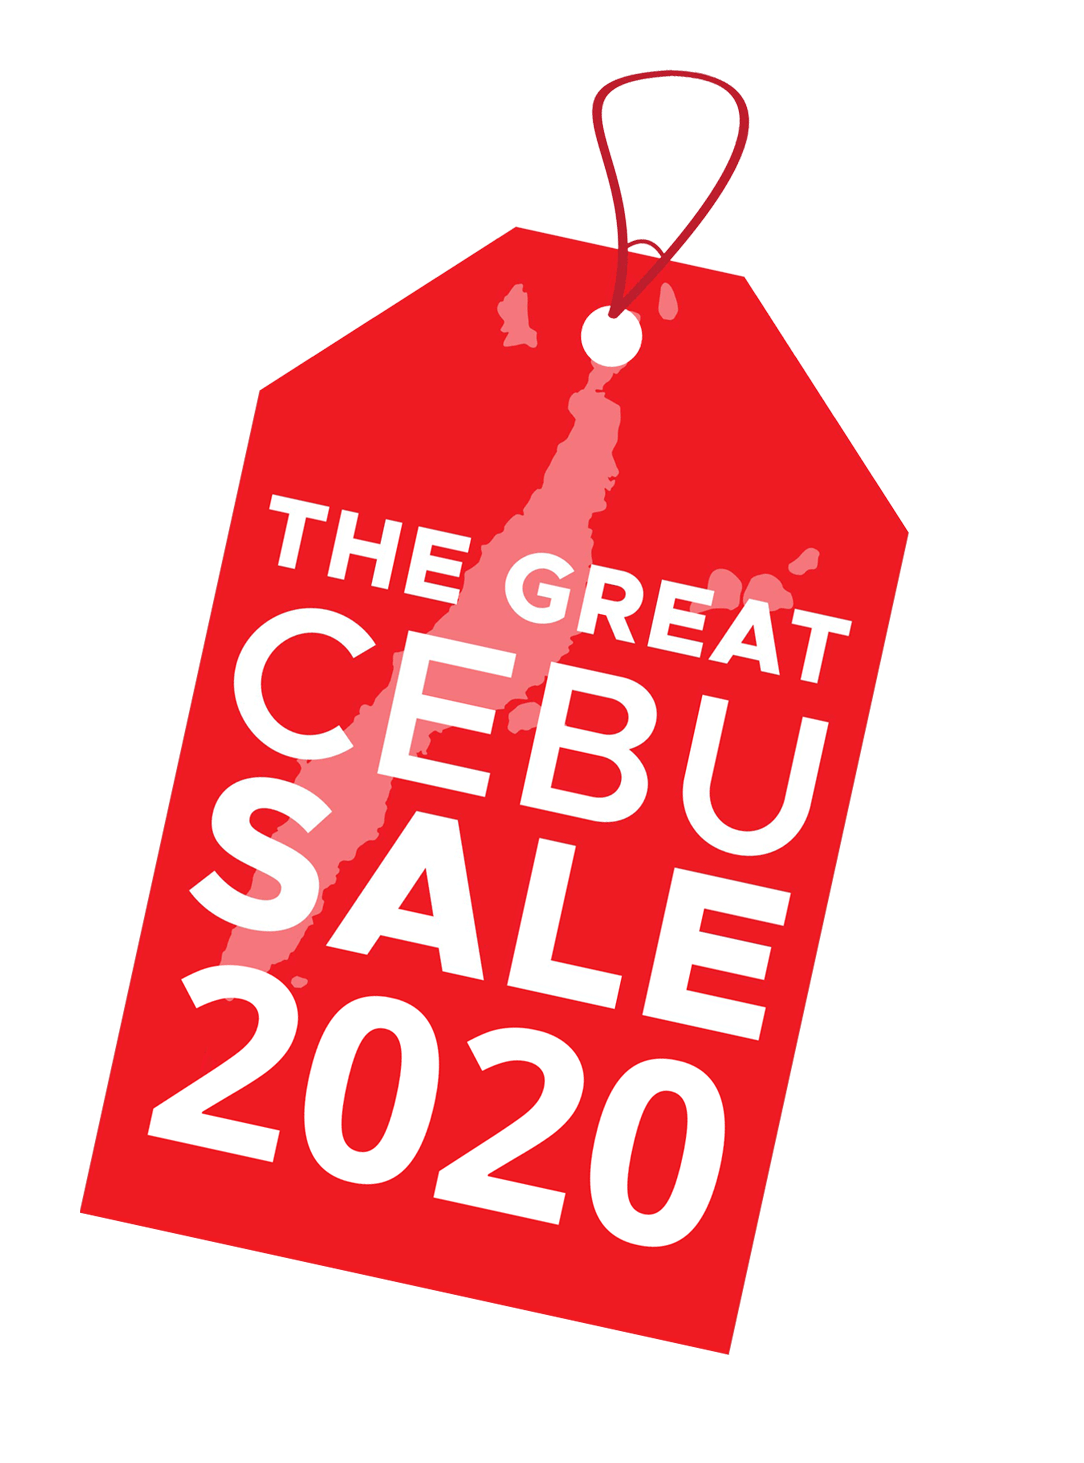 The Great Cebu Sale 2020